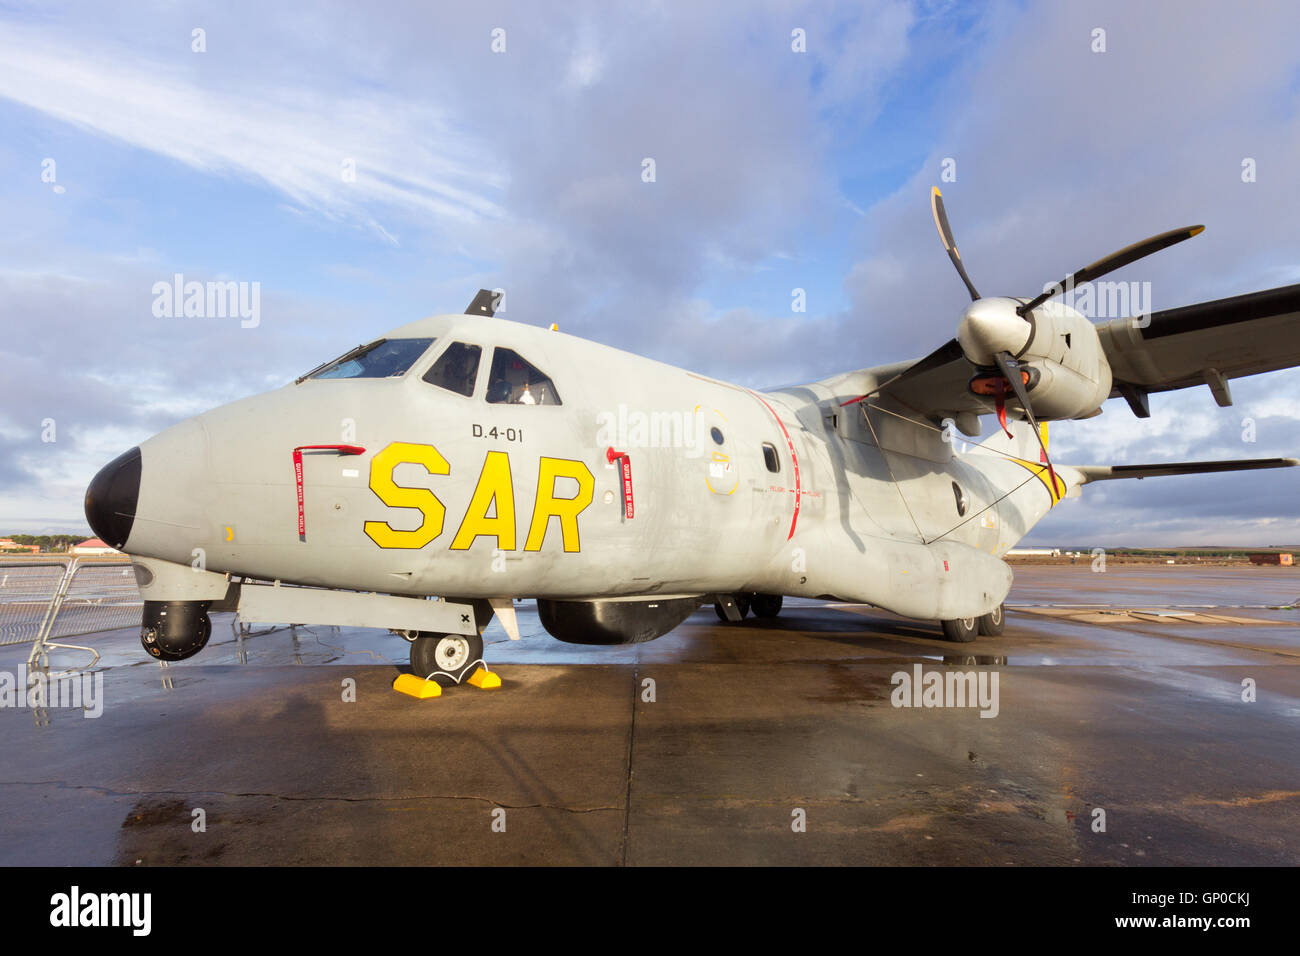 Spanish Air Force Search and Rescue Casa CN-235 maritime patrol aircraft. - Stock Image